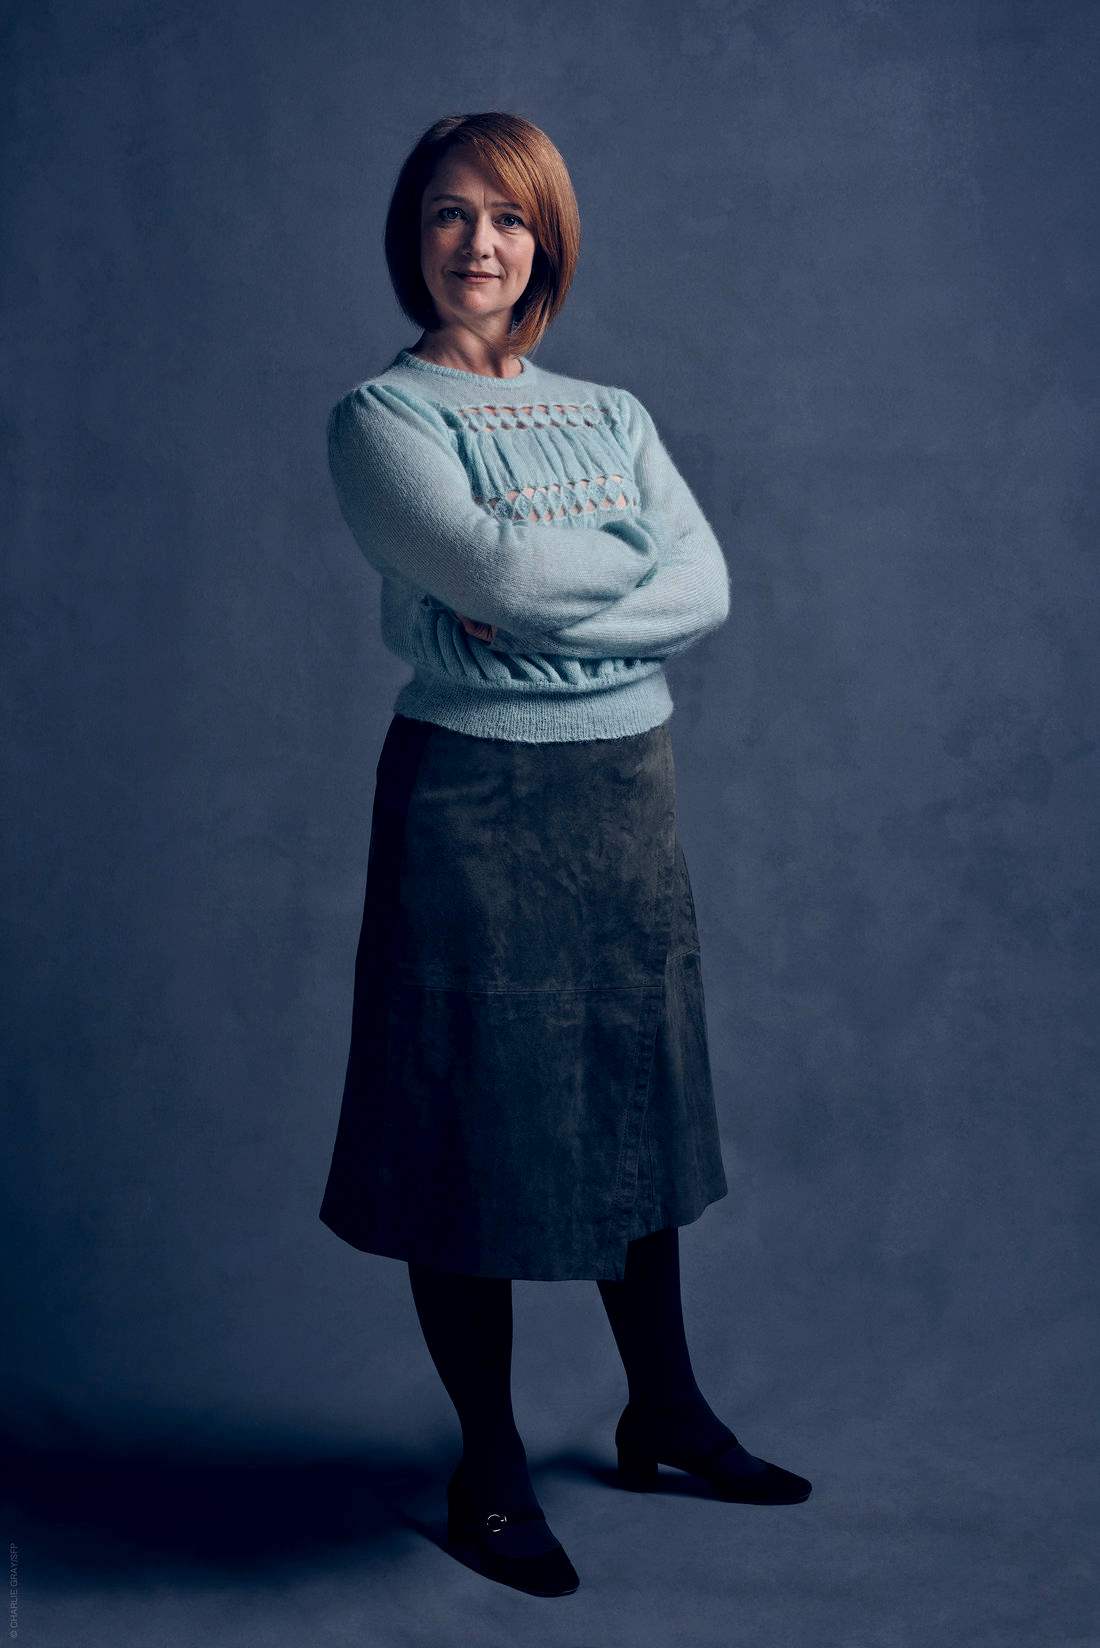 Harry Potter and the Cursed Child Poppy Miller